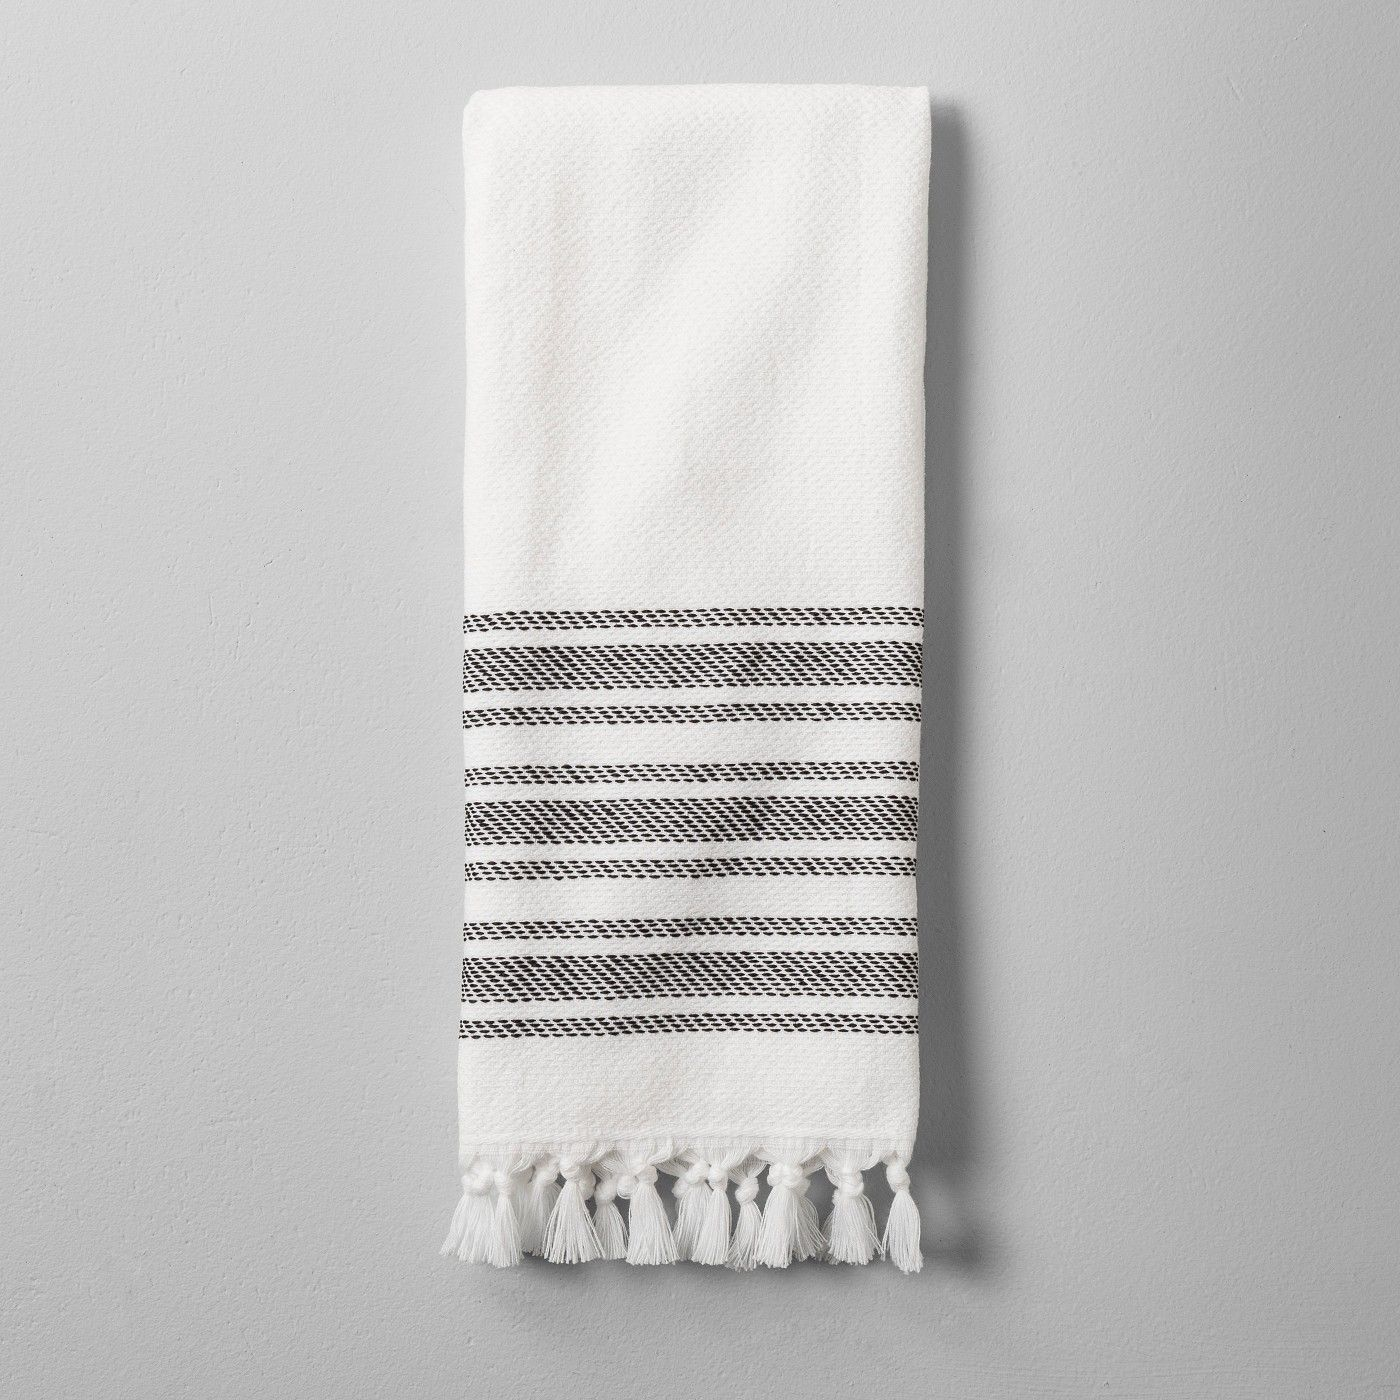 Hand Towel With Tassel Black White Hearth Hand With Magnolia White Bath Towels Hearth Hand With Magnolia Hearth And Hand Target